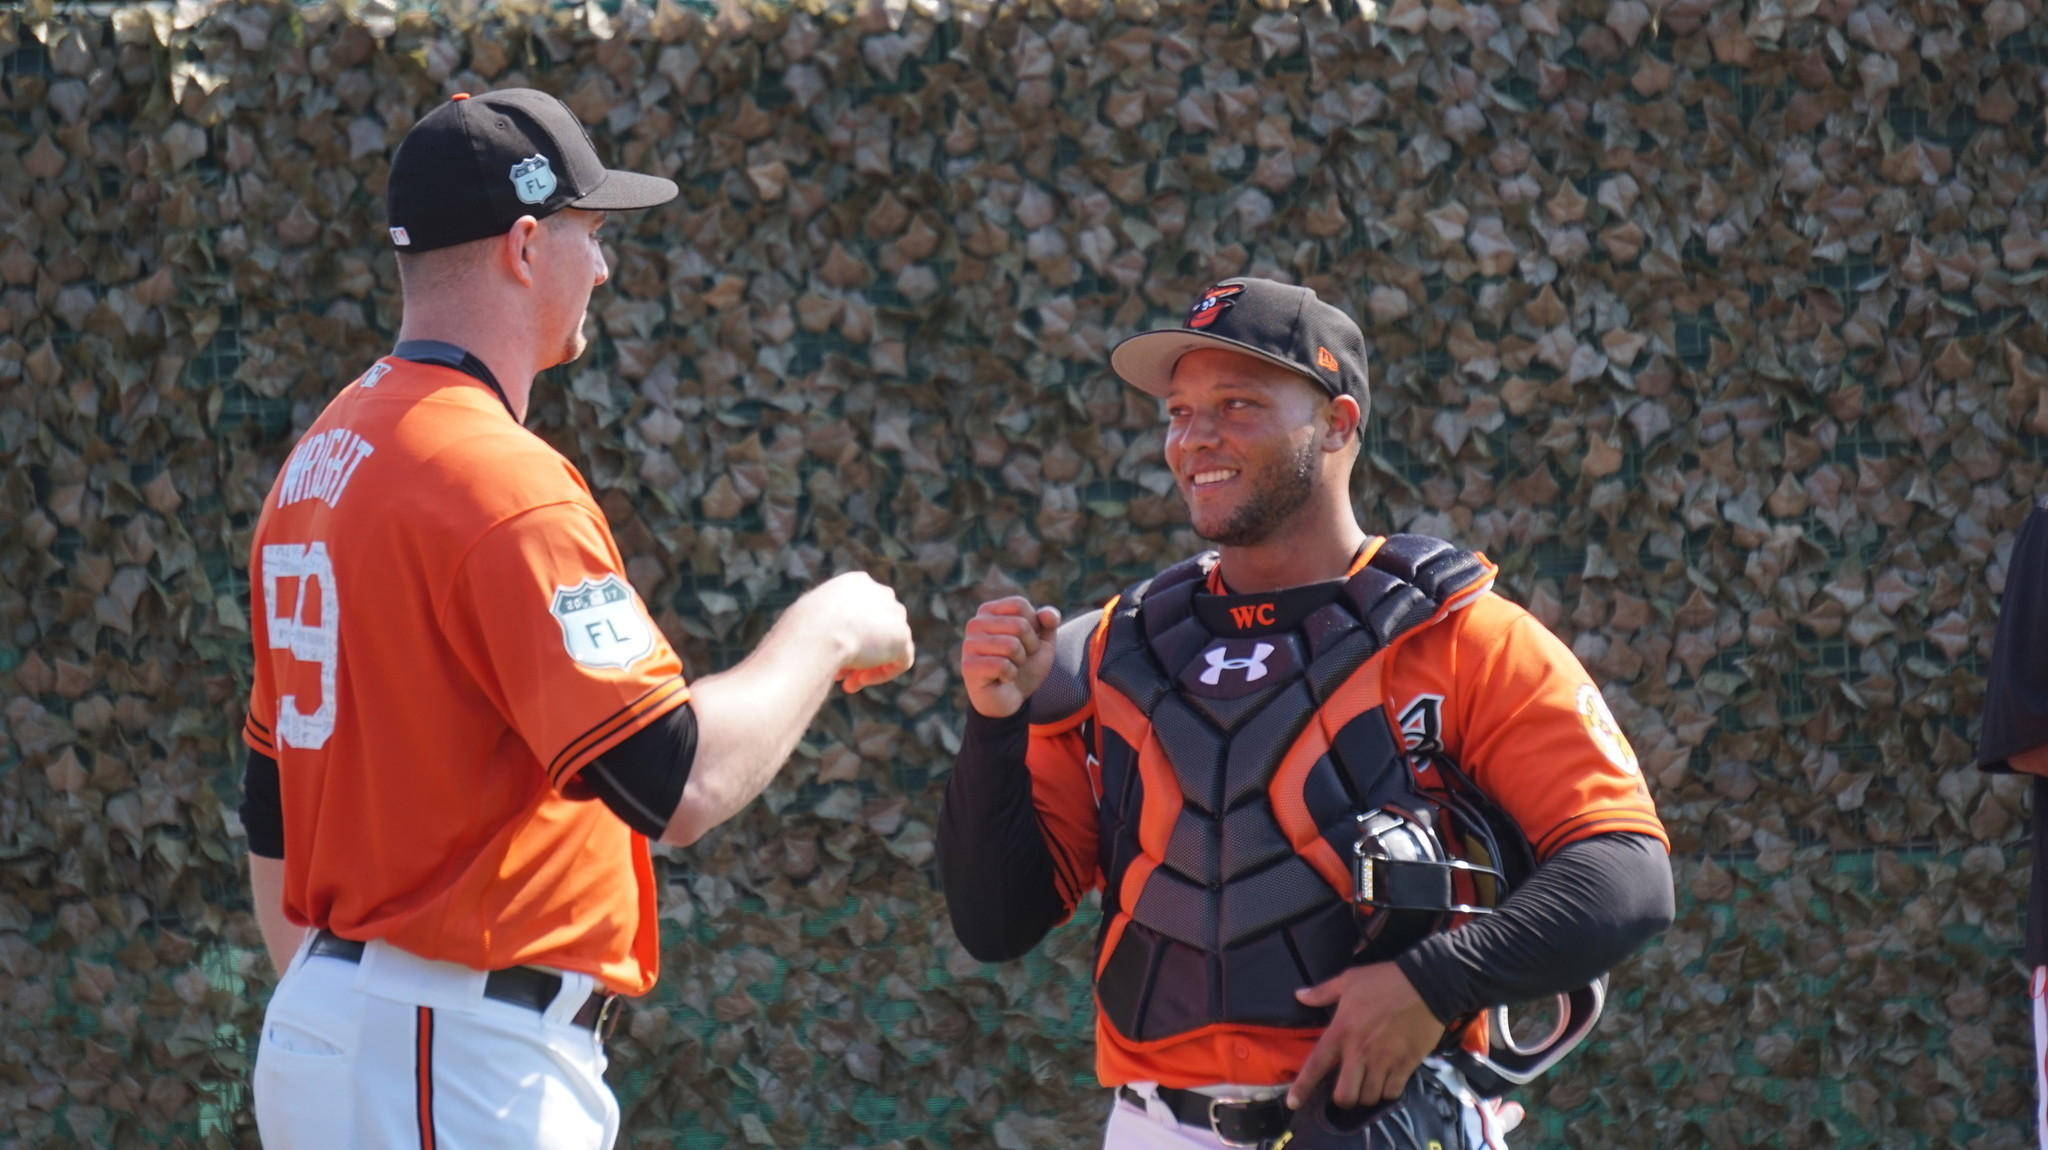 Bs-sp-orioles-spring-training-0219-20170217